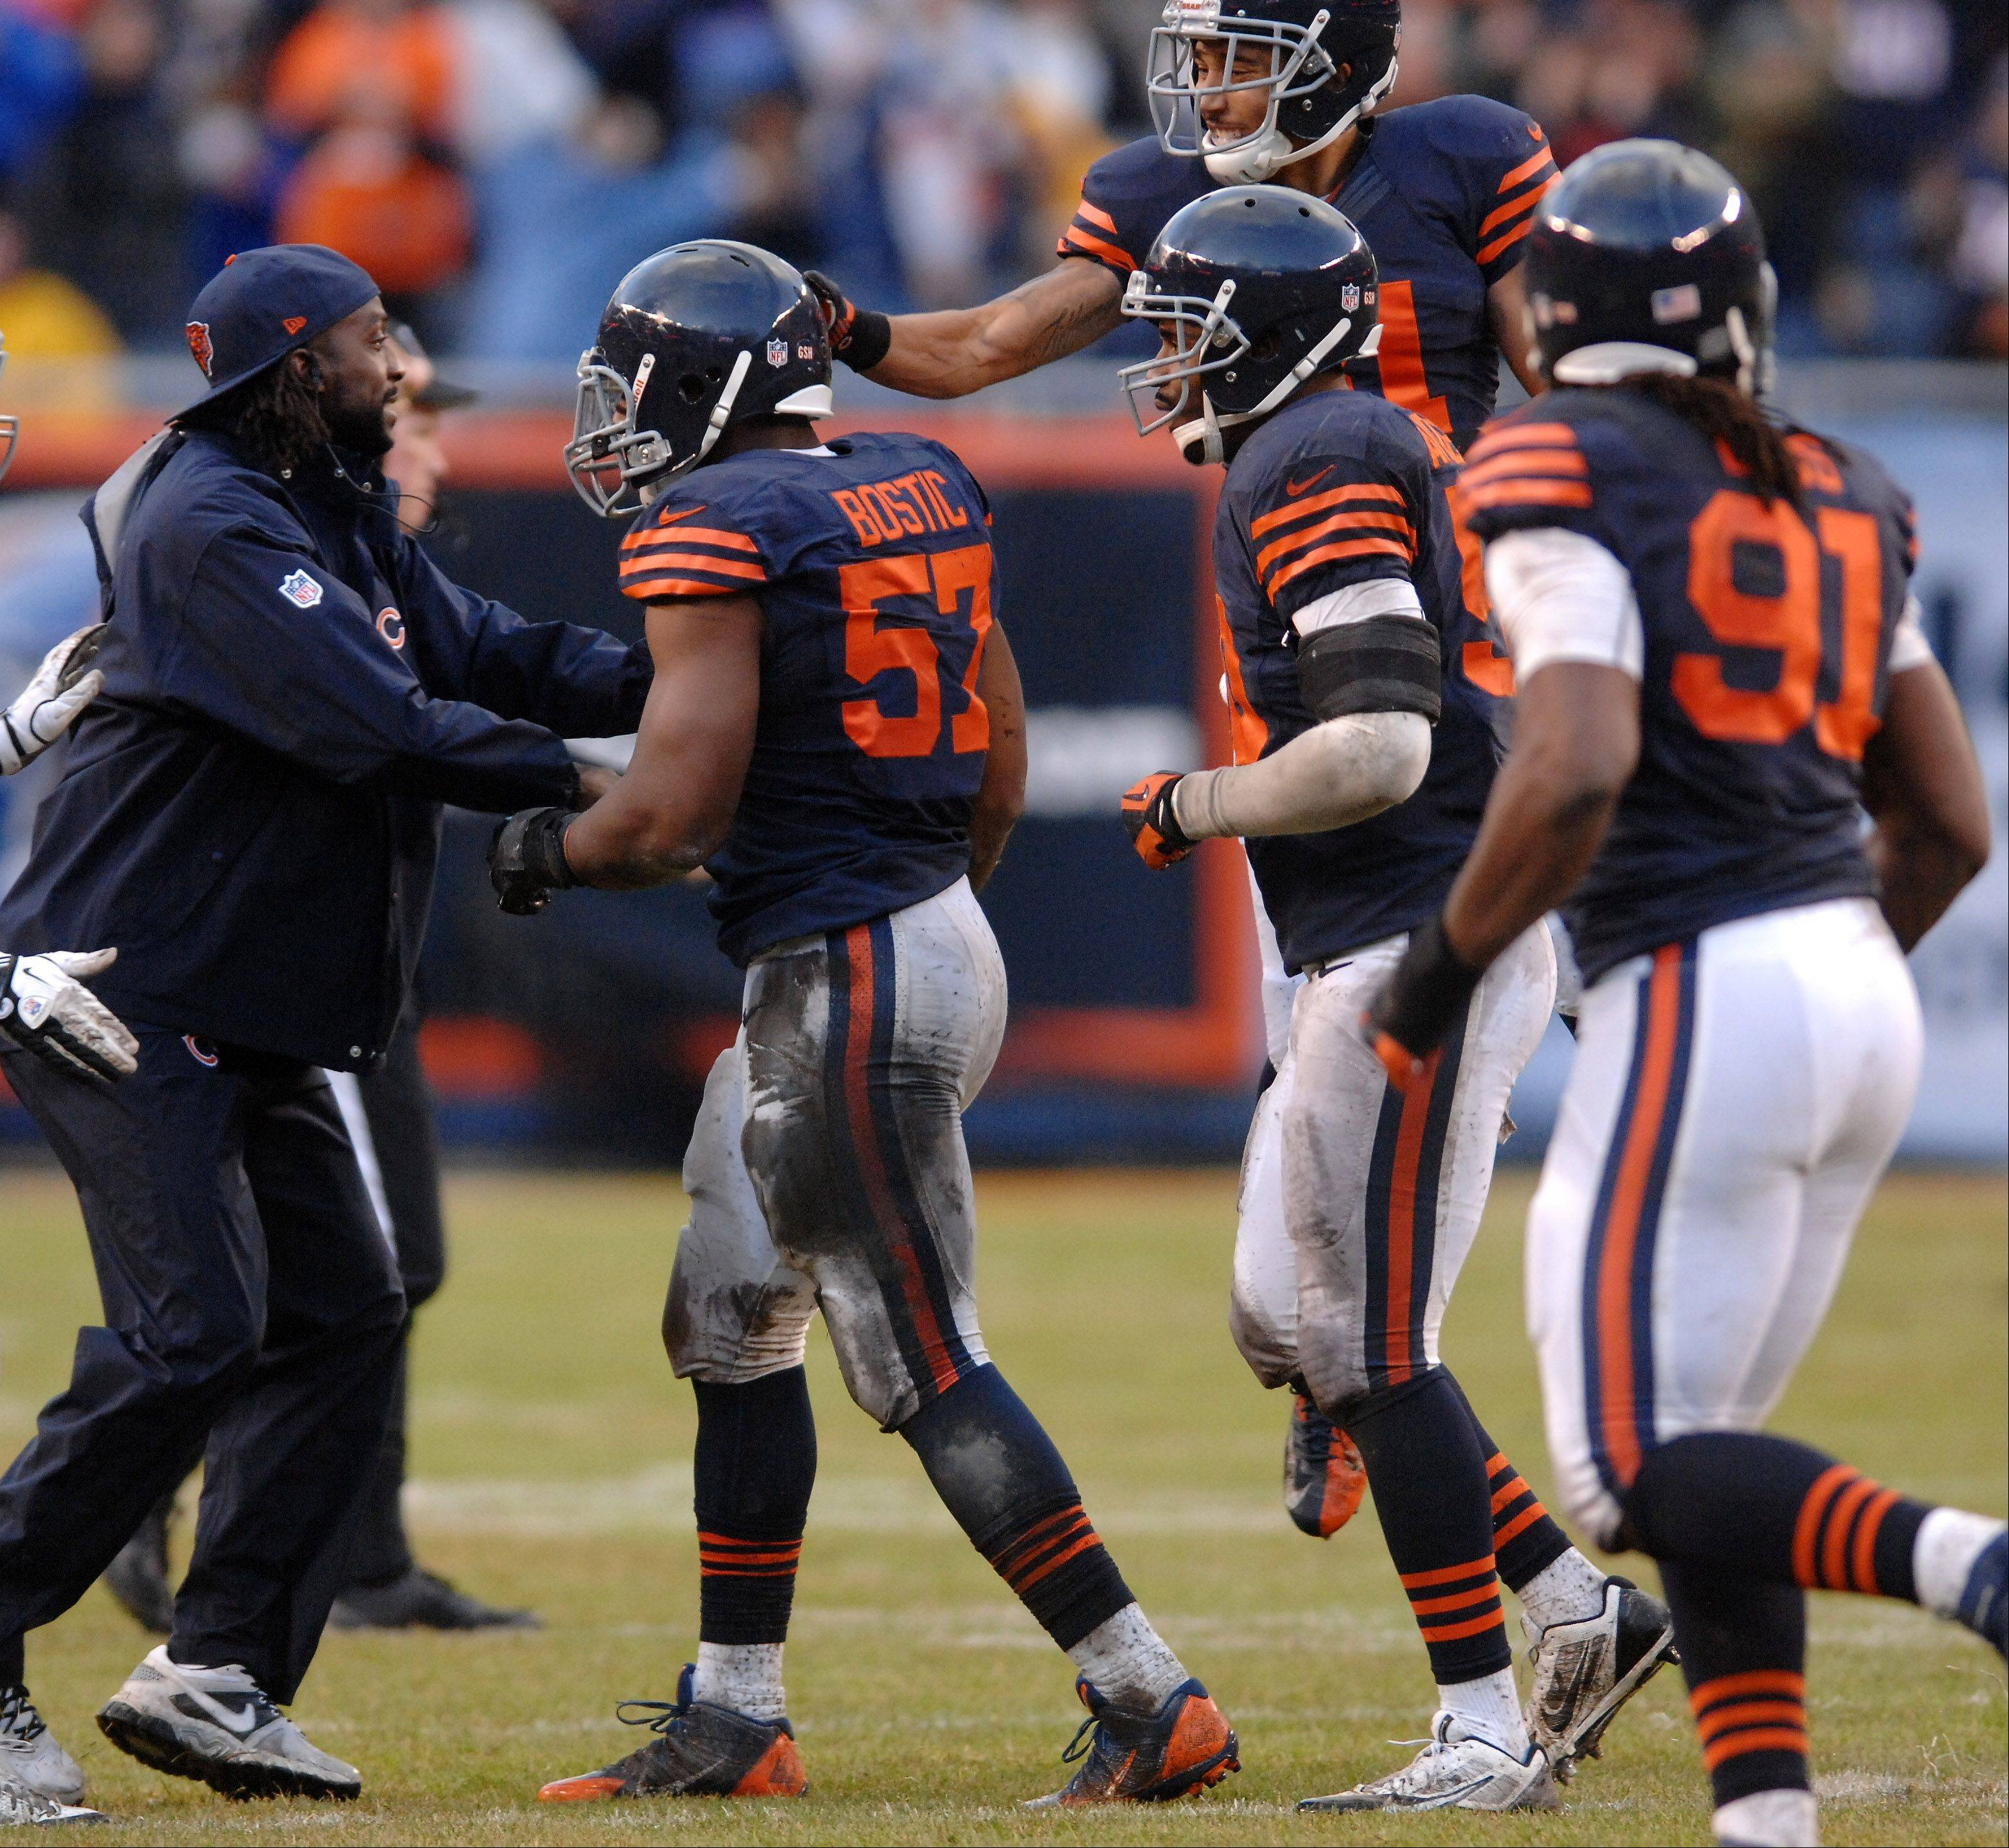 Rick West/rwest@dailyherald.comInjured cornerback Charles Tillman greets and congratulates Bears linebacker Jon Bostic after his interception during Sunday's victory over Baltimore.